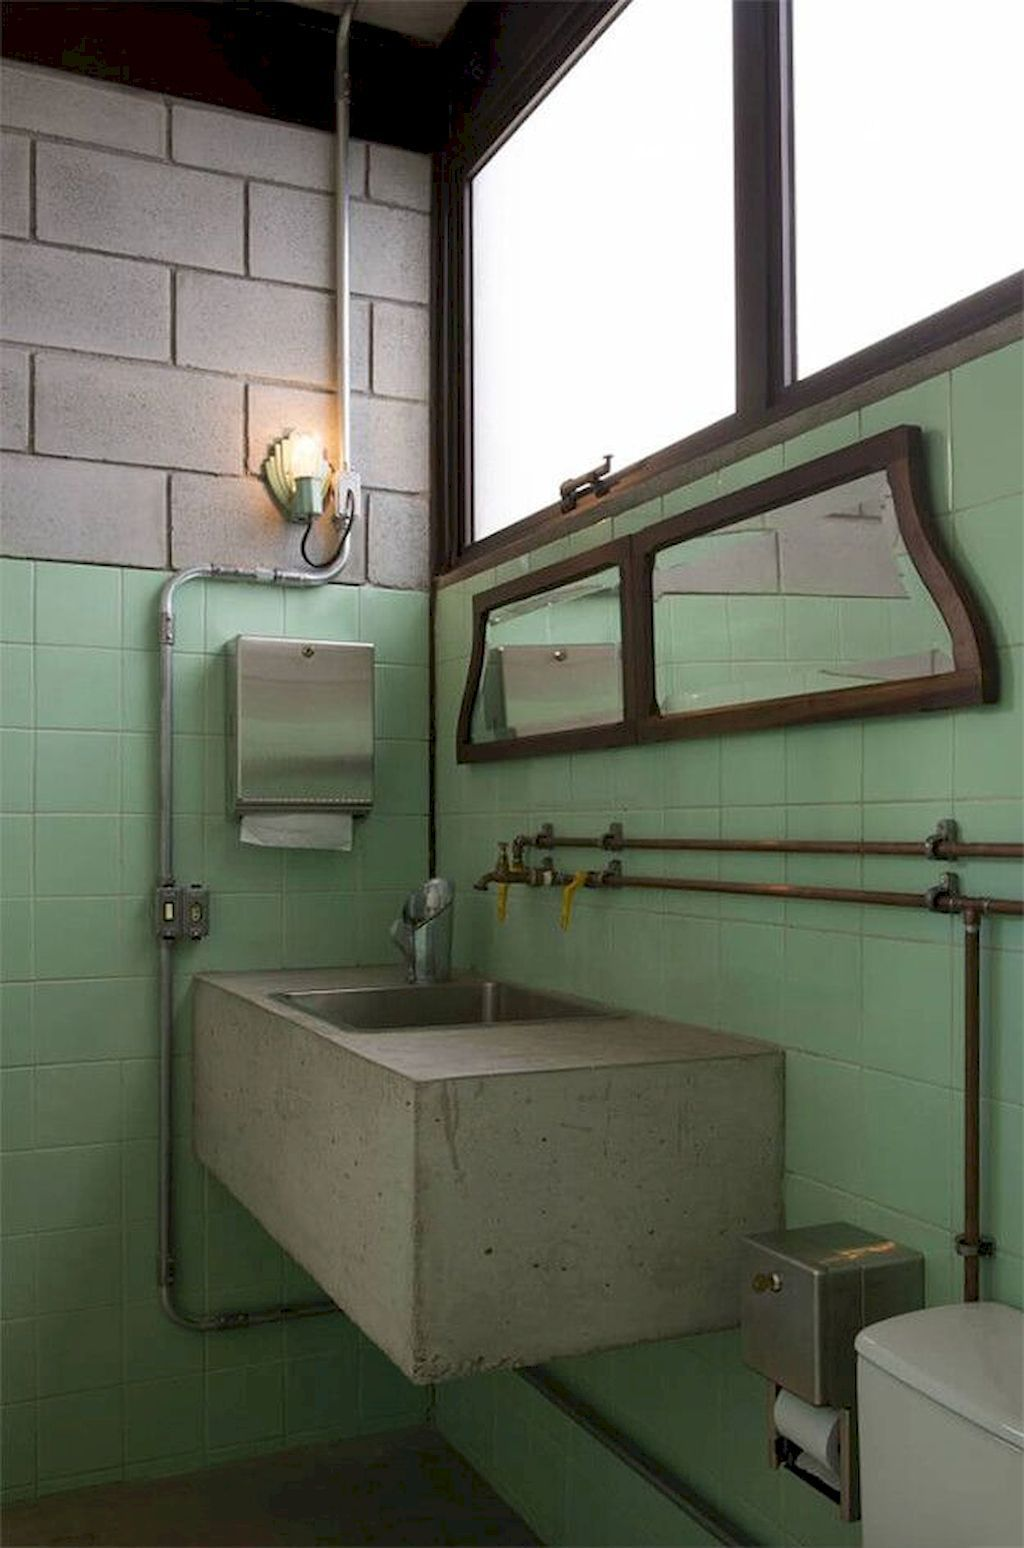 Industrial Decorating Ideas And Tips In 2020 Vintage Industrial Bathroom Industrial Bathroom Decor Industrial Bathroom Design